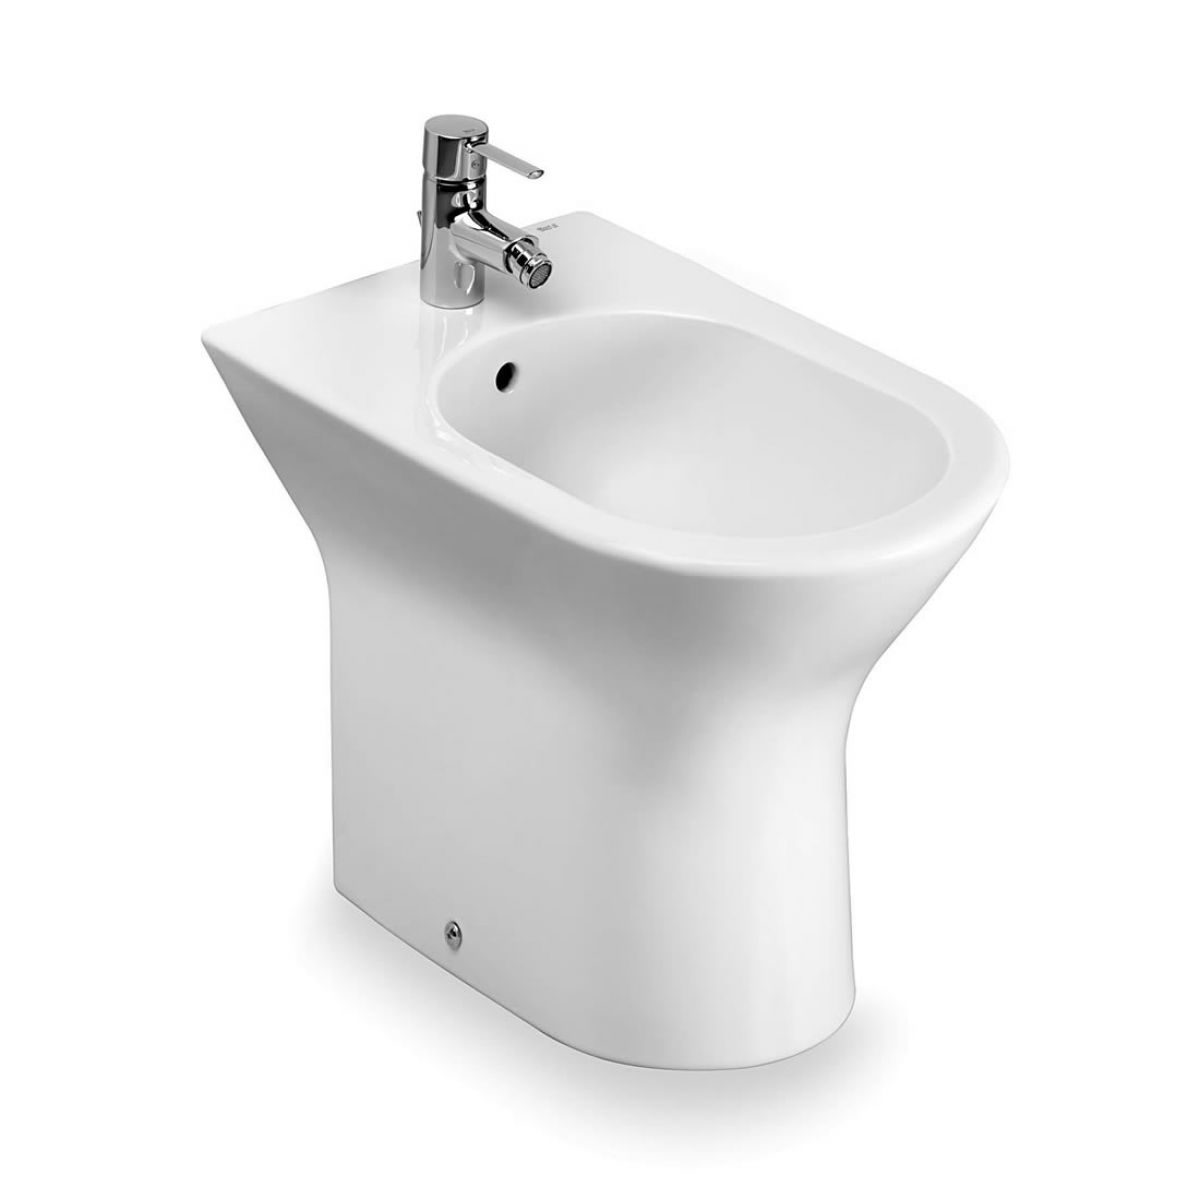 Roca Nexo Floorstanding Bidet : UK Bathrooms